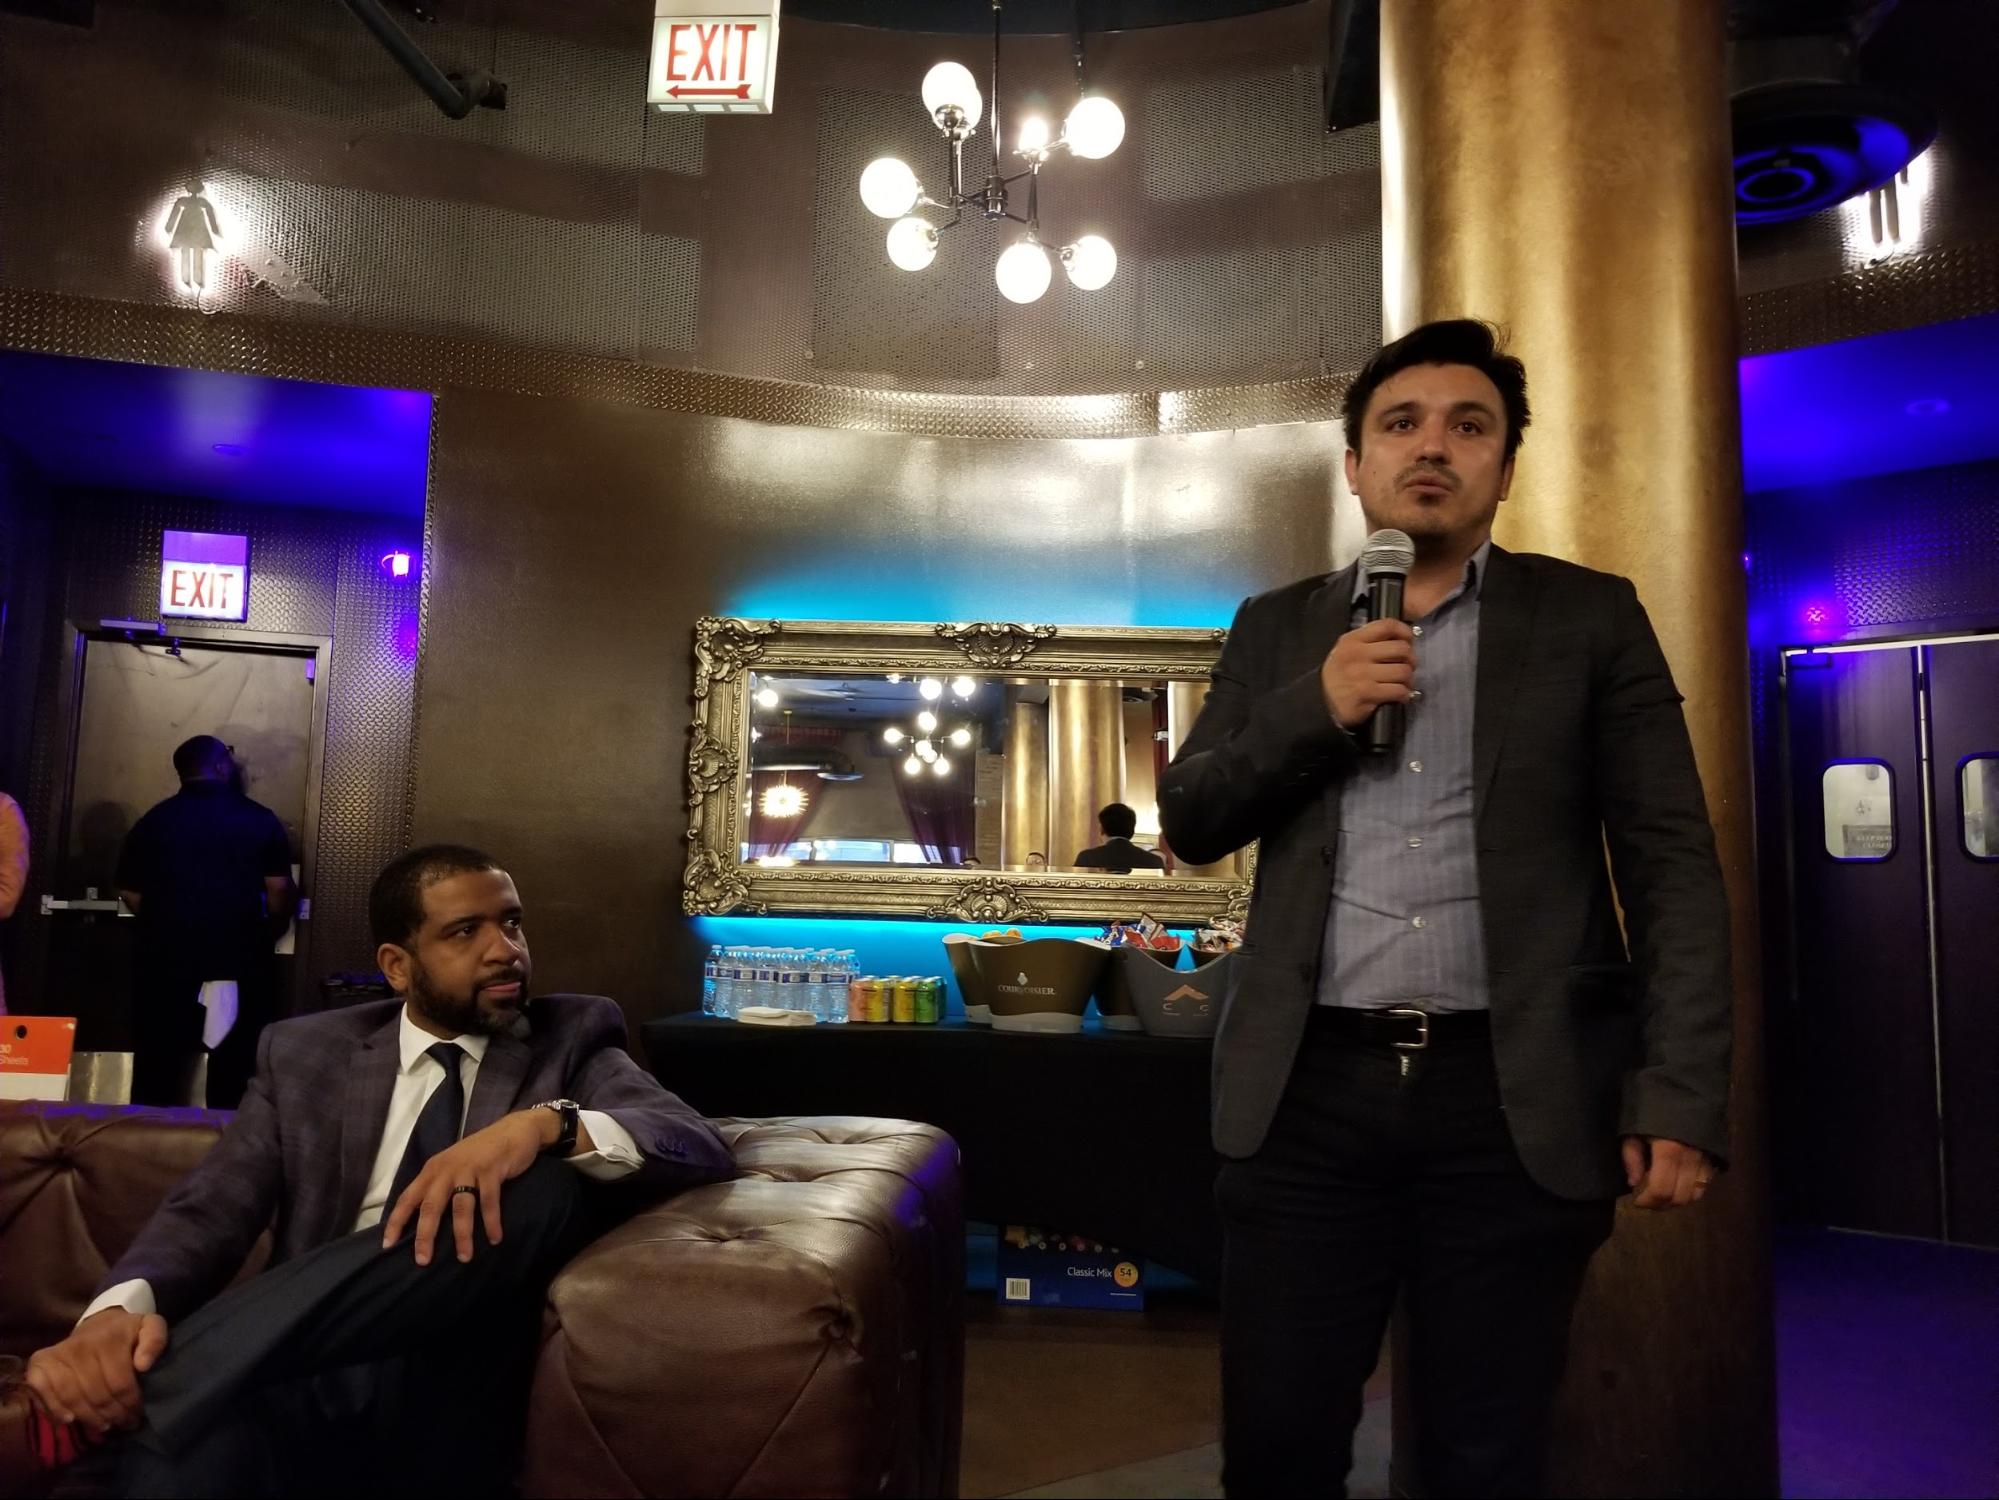 Alderman-elect Byron Sigcho-Lopez (right) convened a community meeting this week on The 78 after a lame-duck City Council last week authorized nearly $1 billion in taxpayer subsidies for the project.